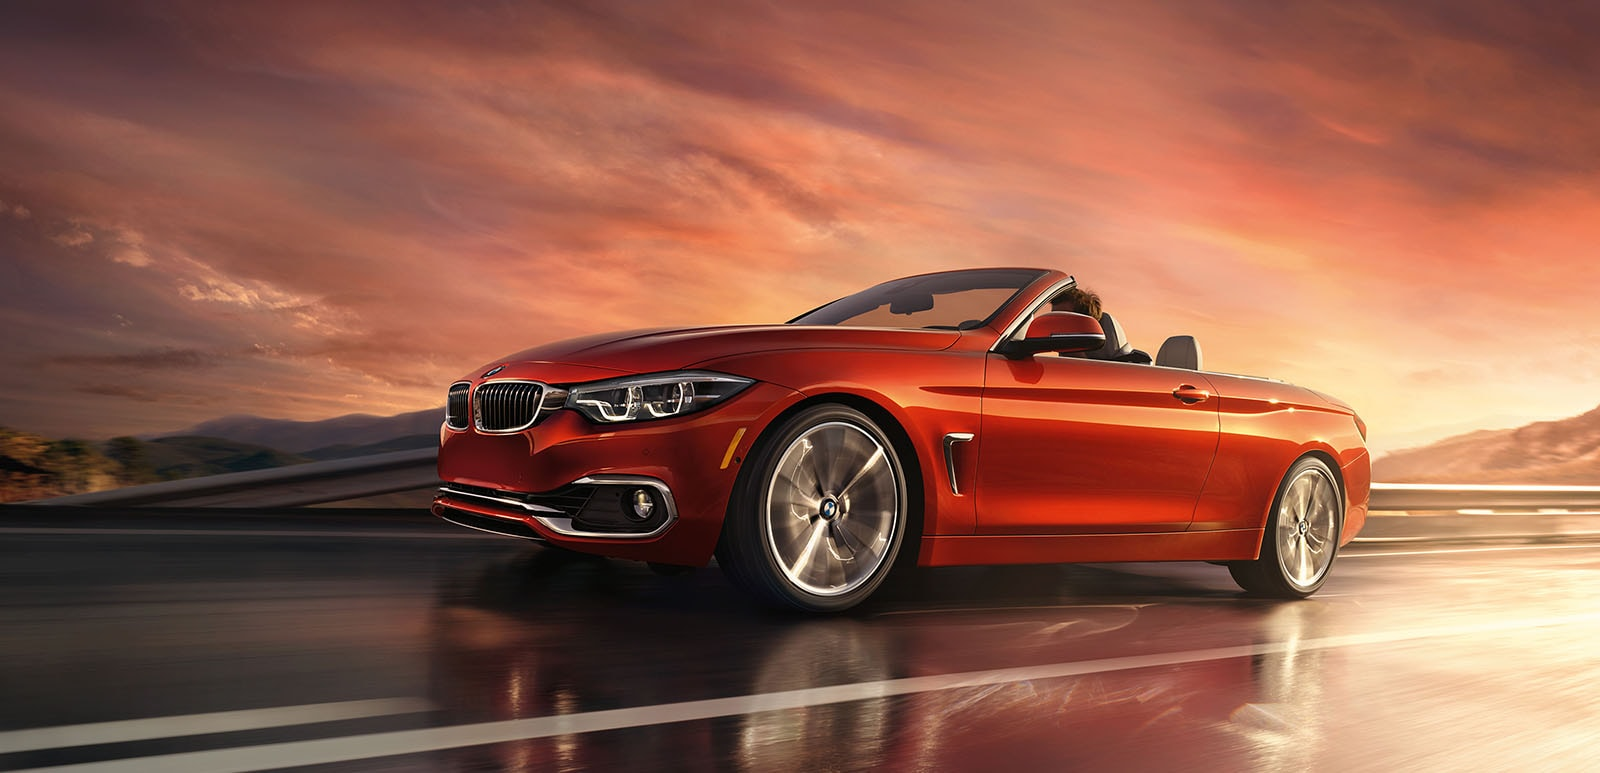 A 2019 BMW 4 Series Convertible driving at sunset